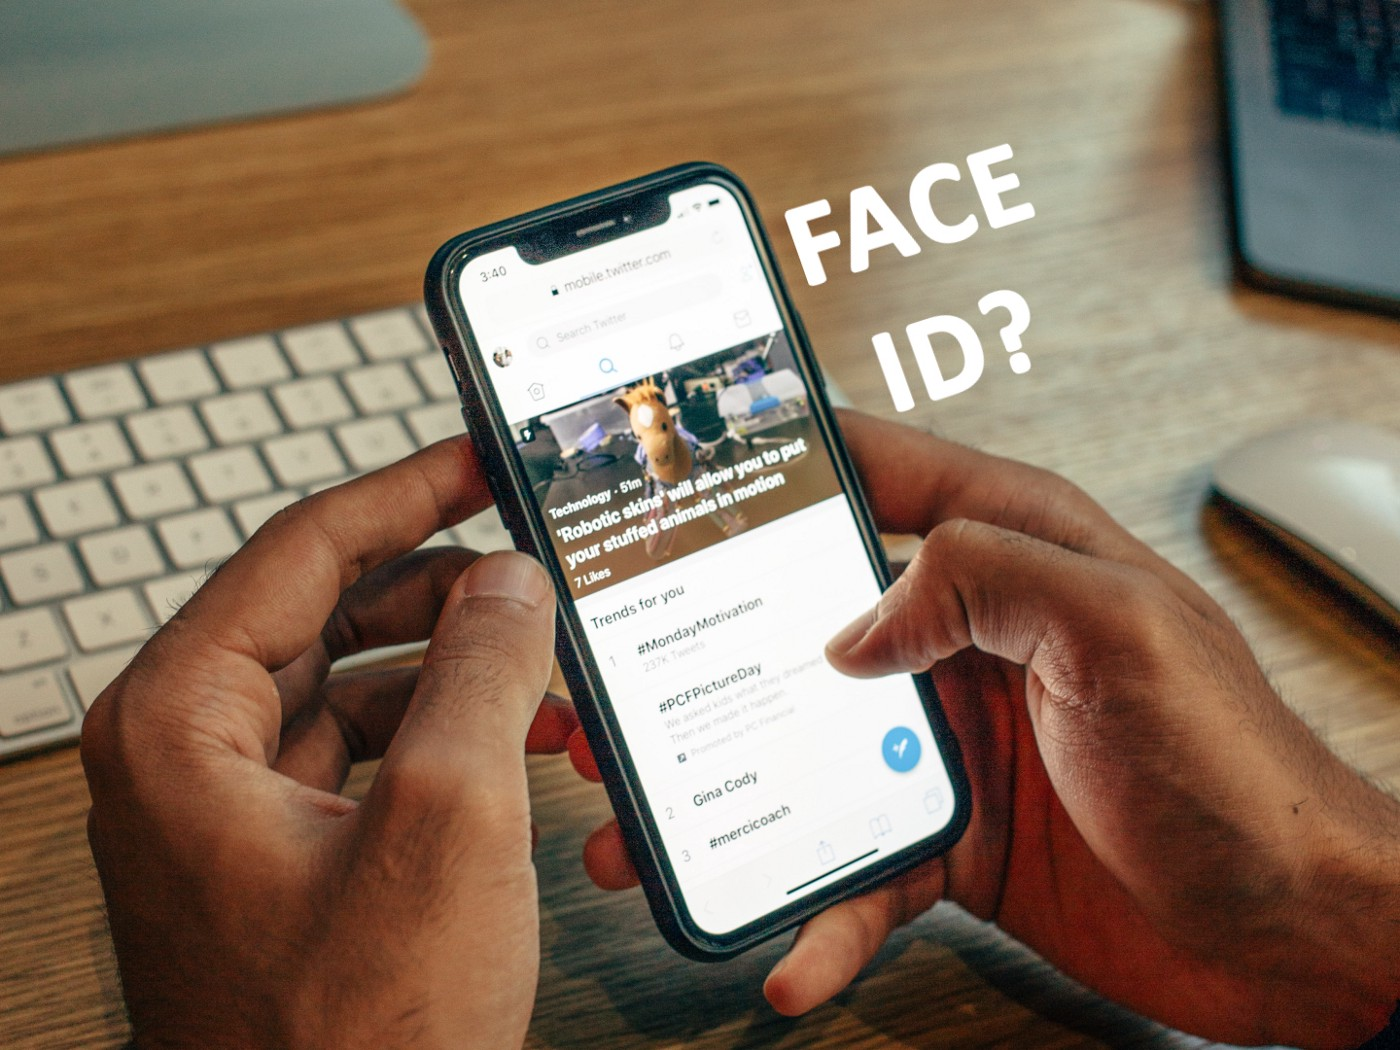 How To Set Up Face ID For Your Iphone - The Right Tech Quick Q & A 2021